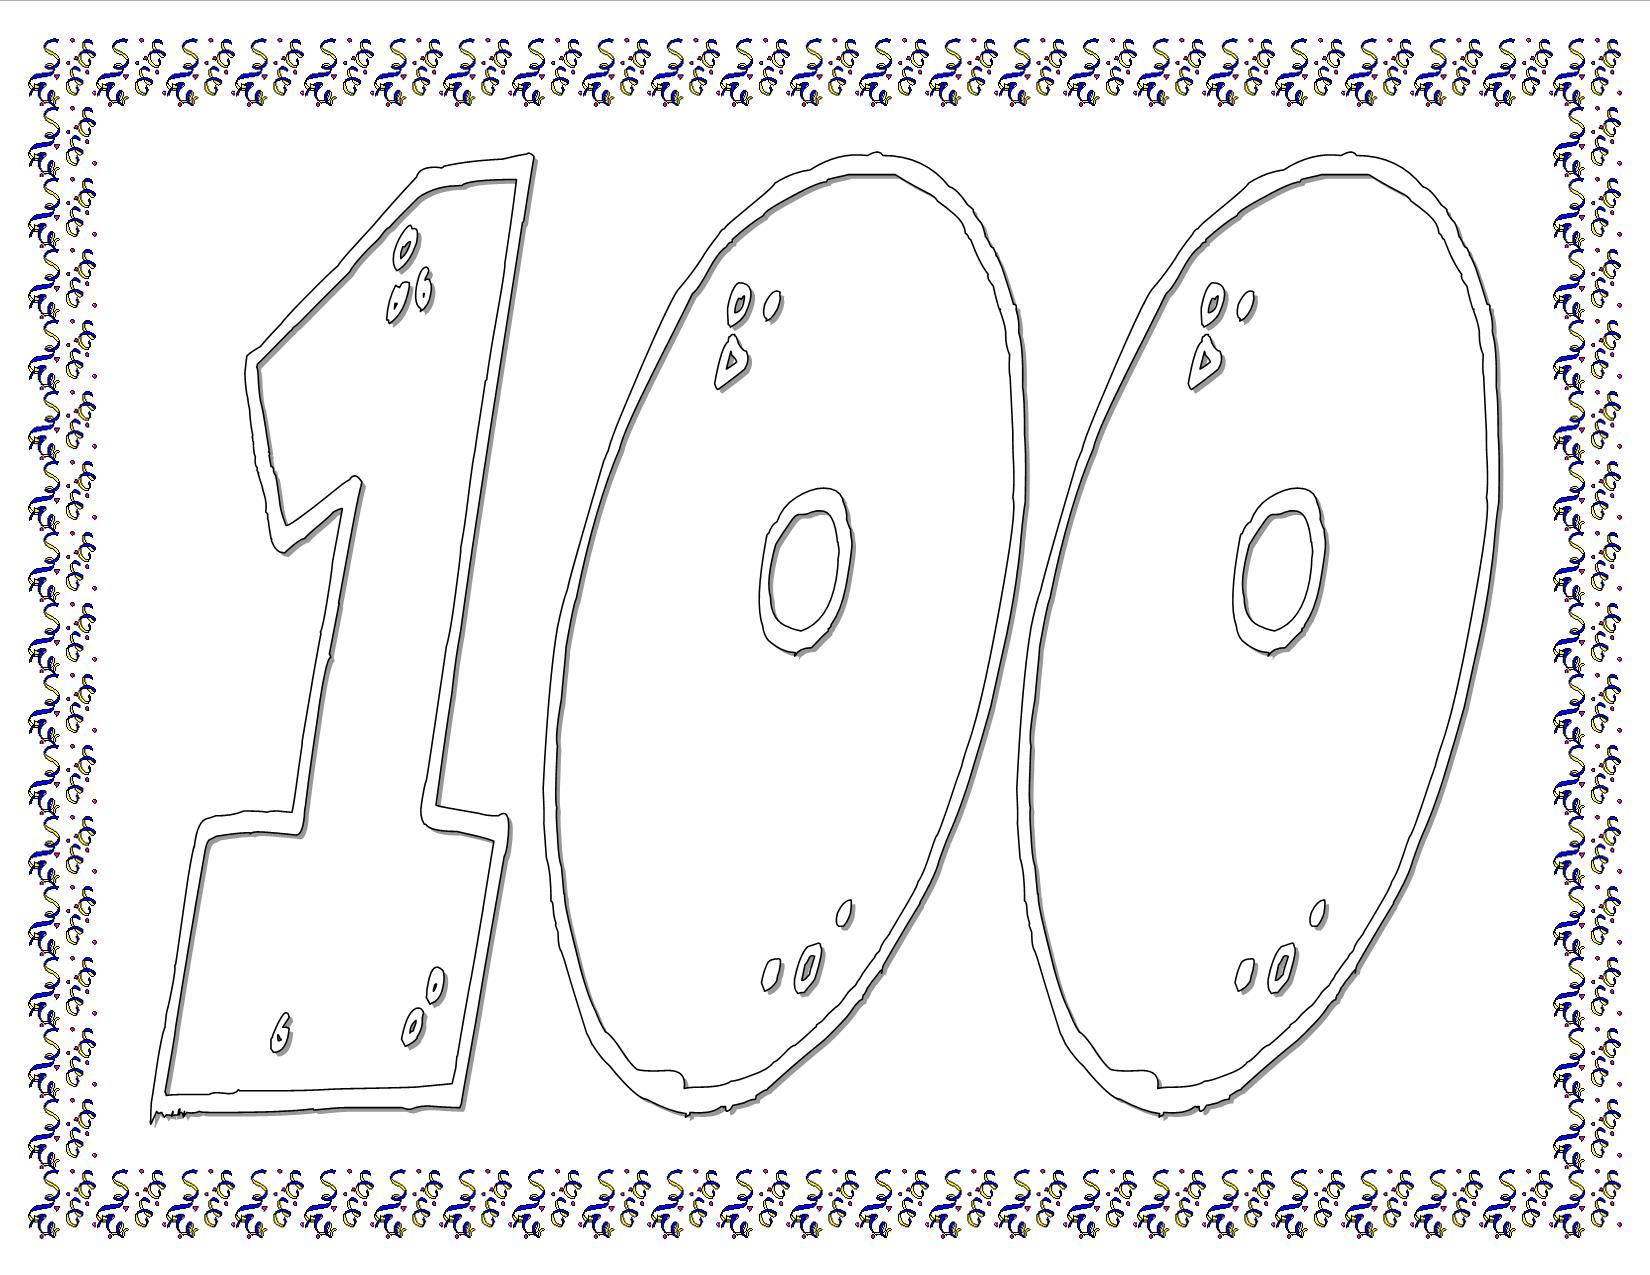 100th-day-of-school-coloring-page-0030-q1